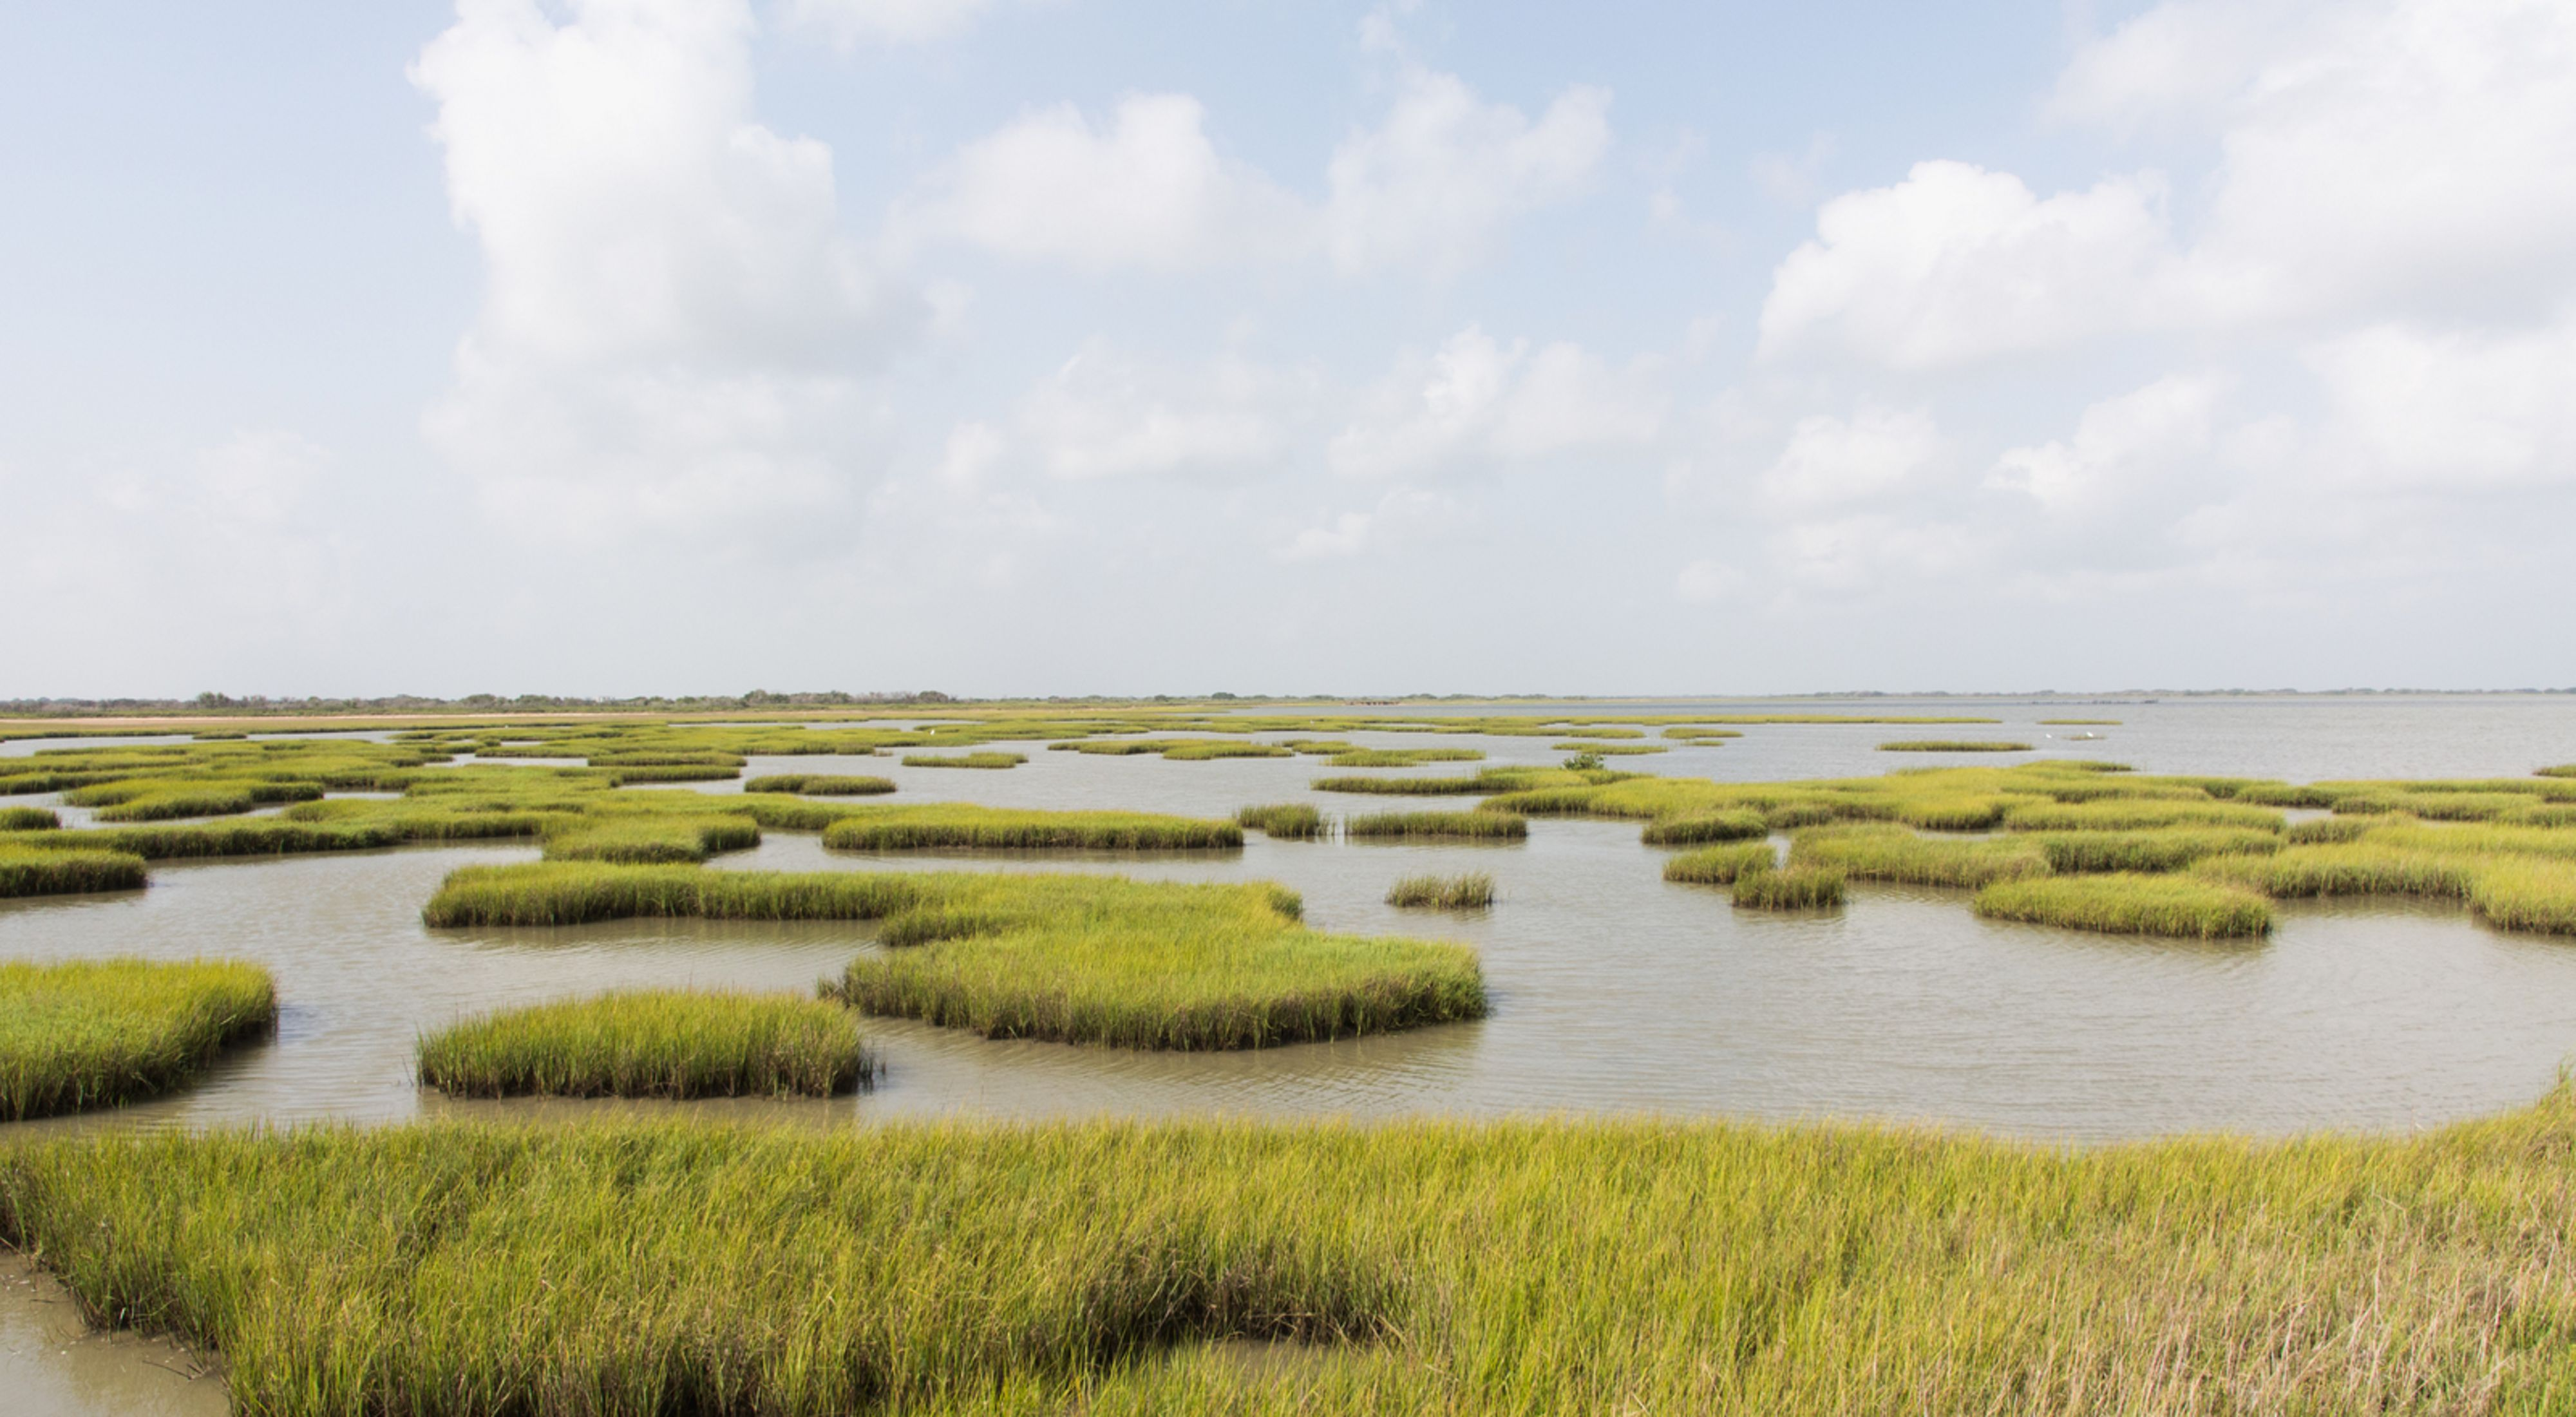 A broad expanse of salt marsh with patches of open water and patches of marsh grass.